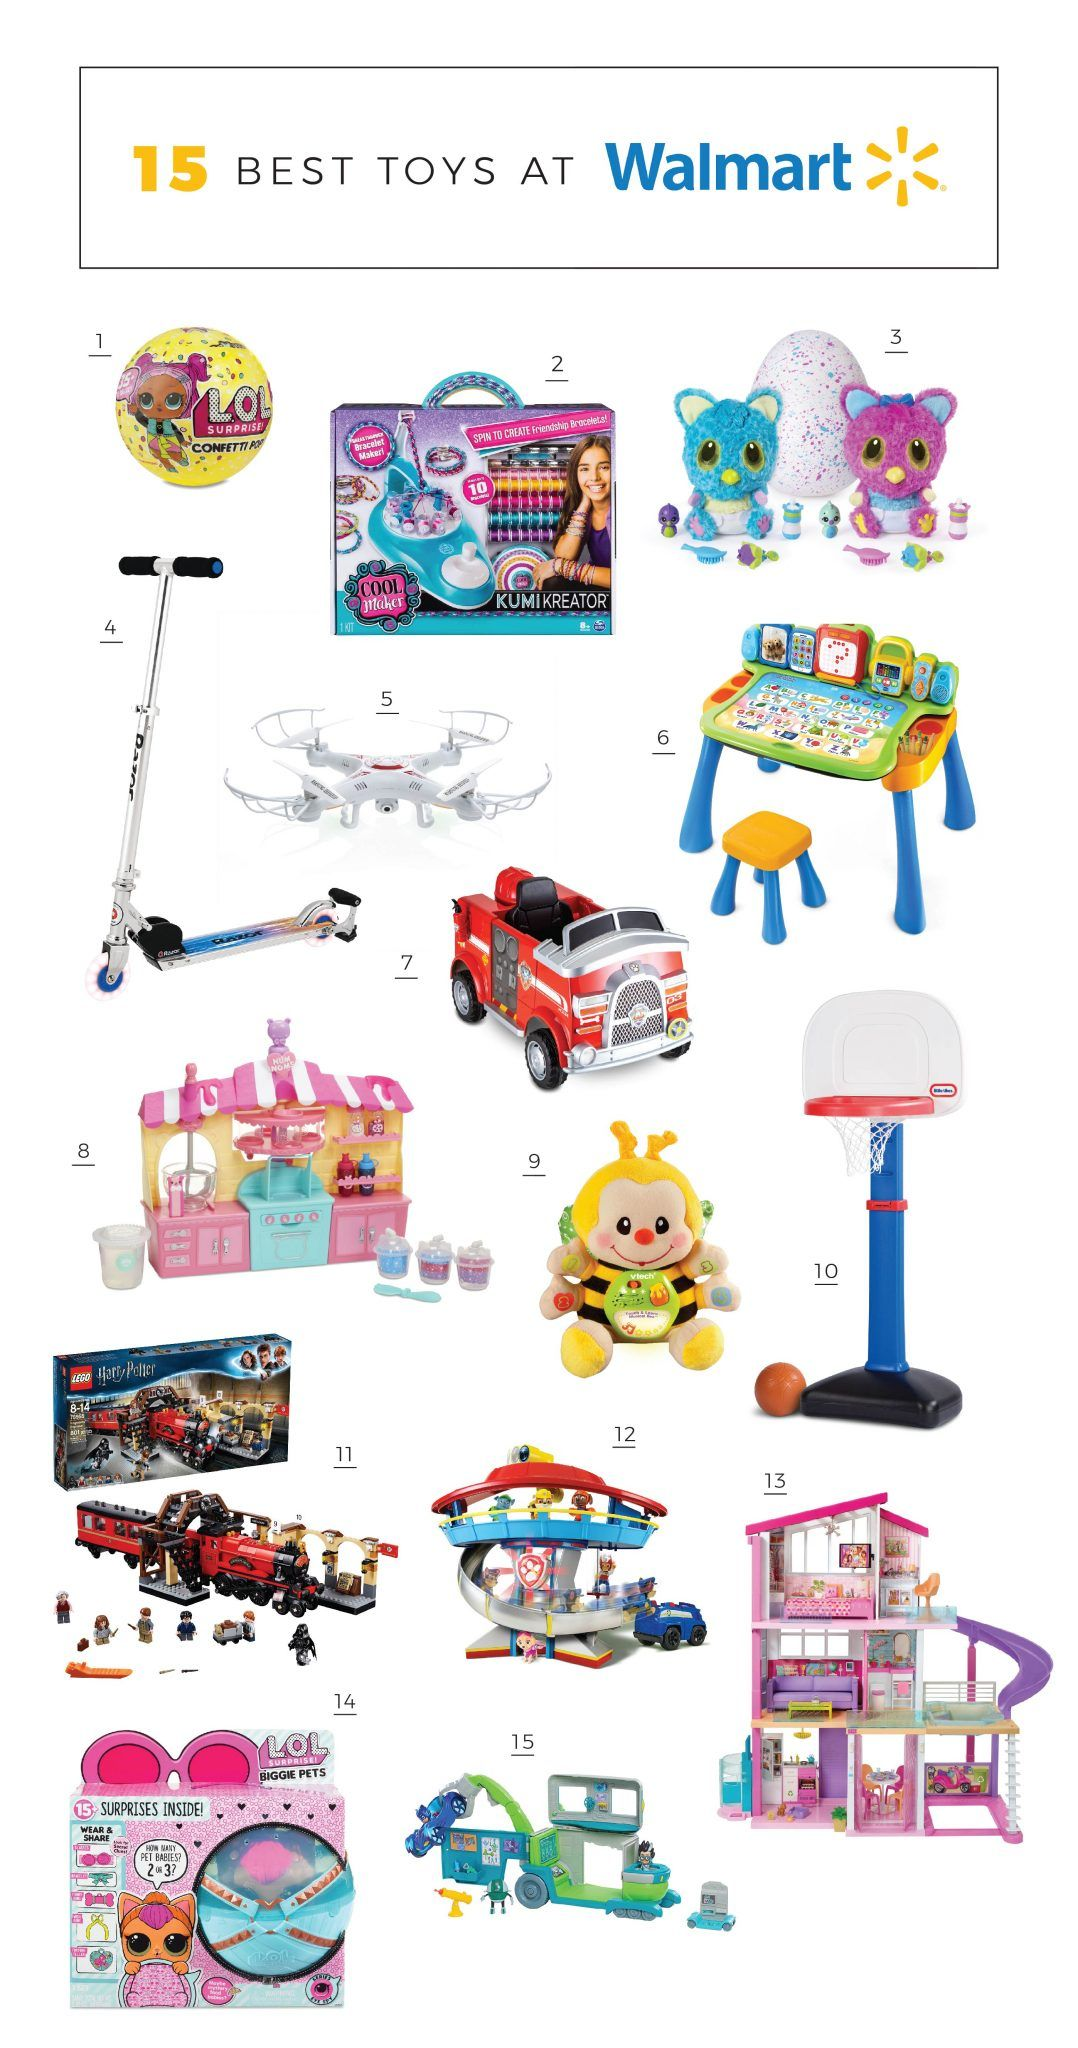 Top 15 Best Toys At Walmart The Girl In The Yellow Dress Walmart Toys Cool Toys Kids Gift Guide [ 2048 x 1078 Pixel ]